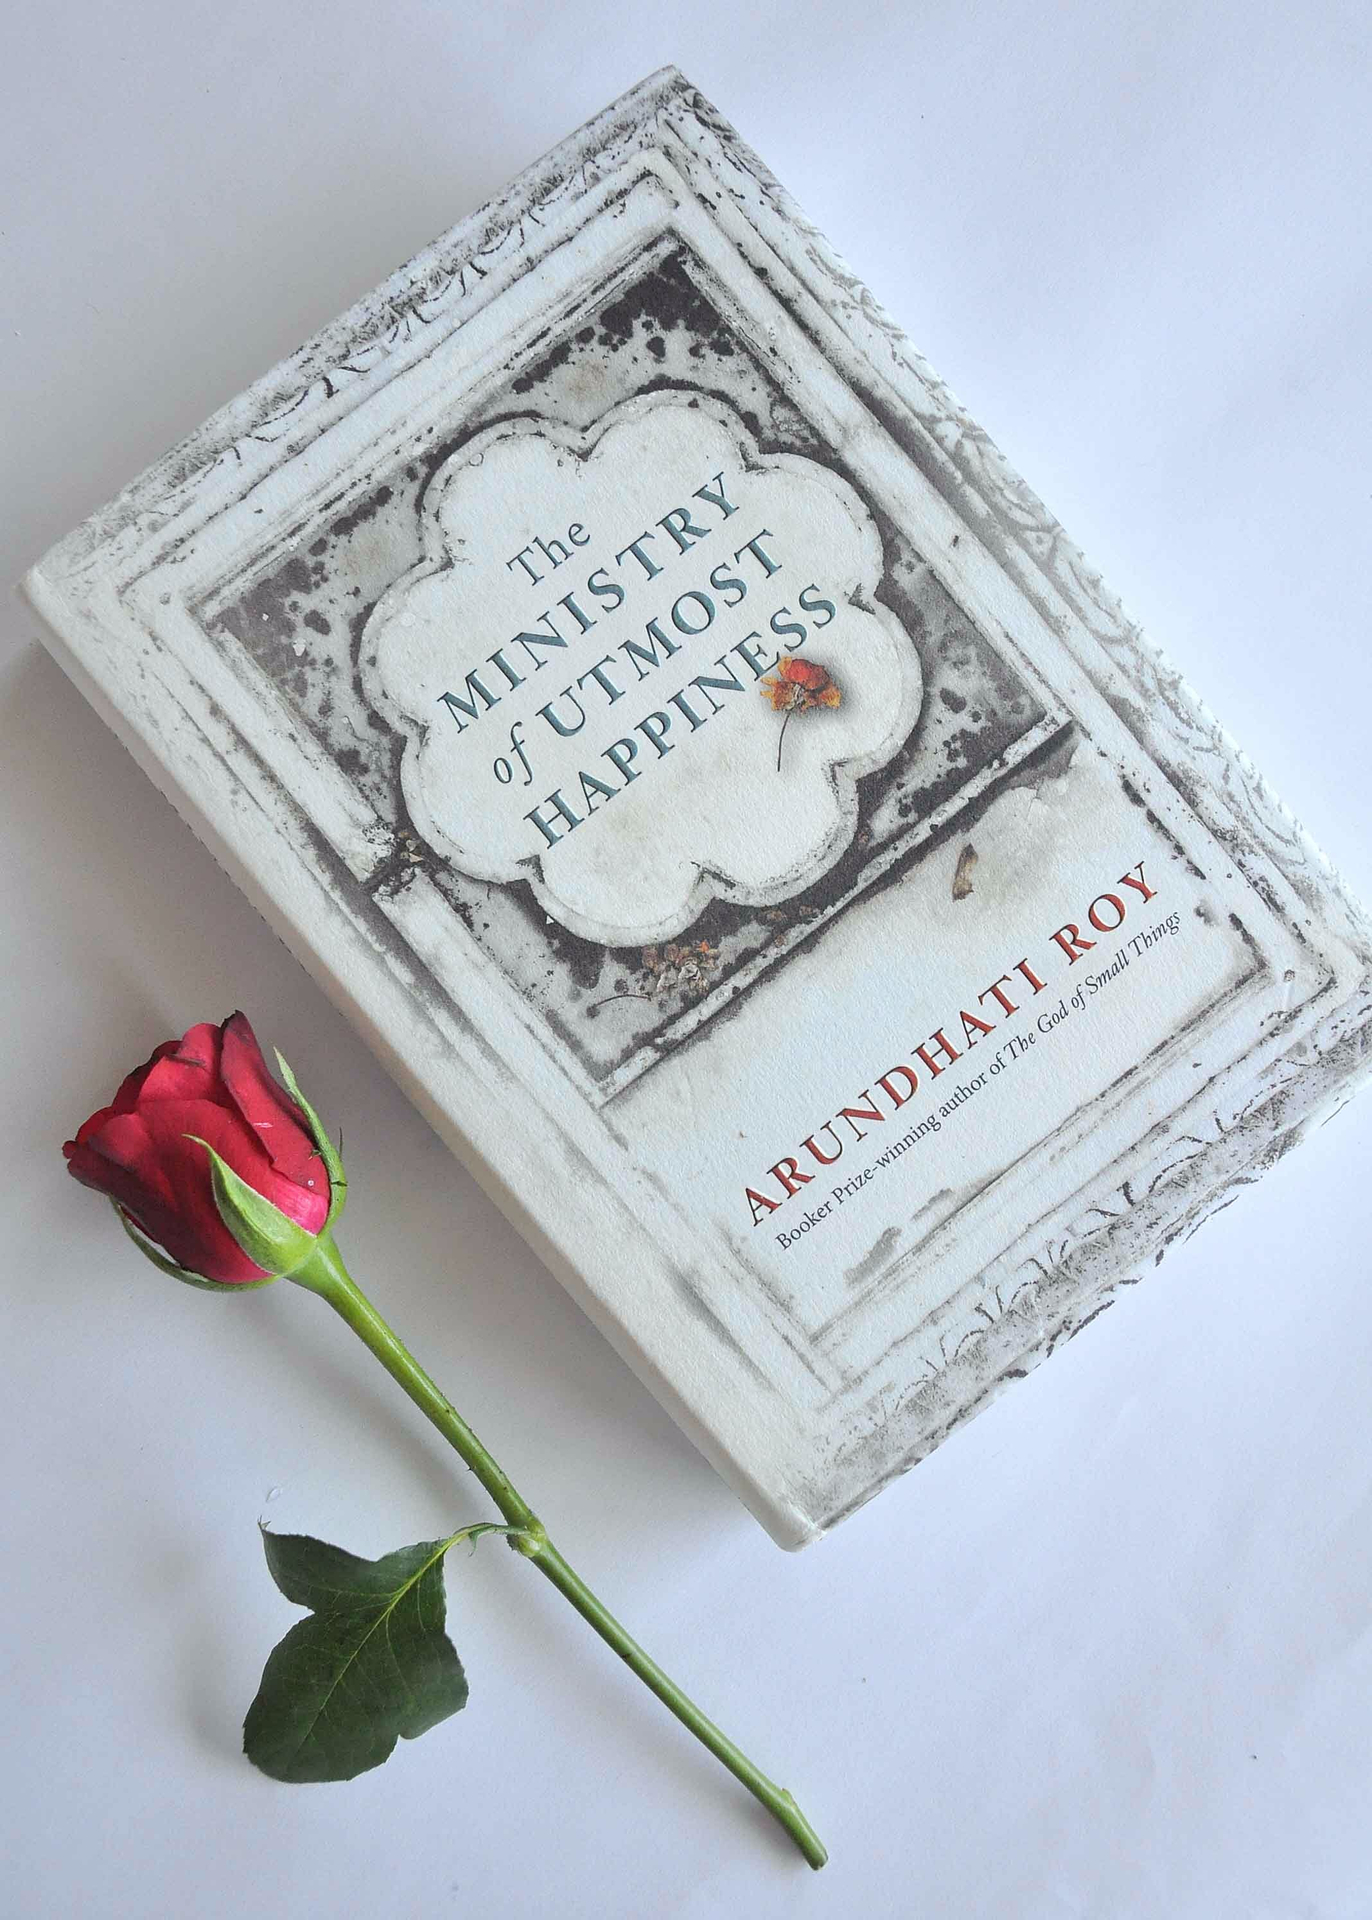 Review: The Ministry of Utmost Hapiness image